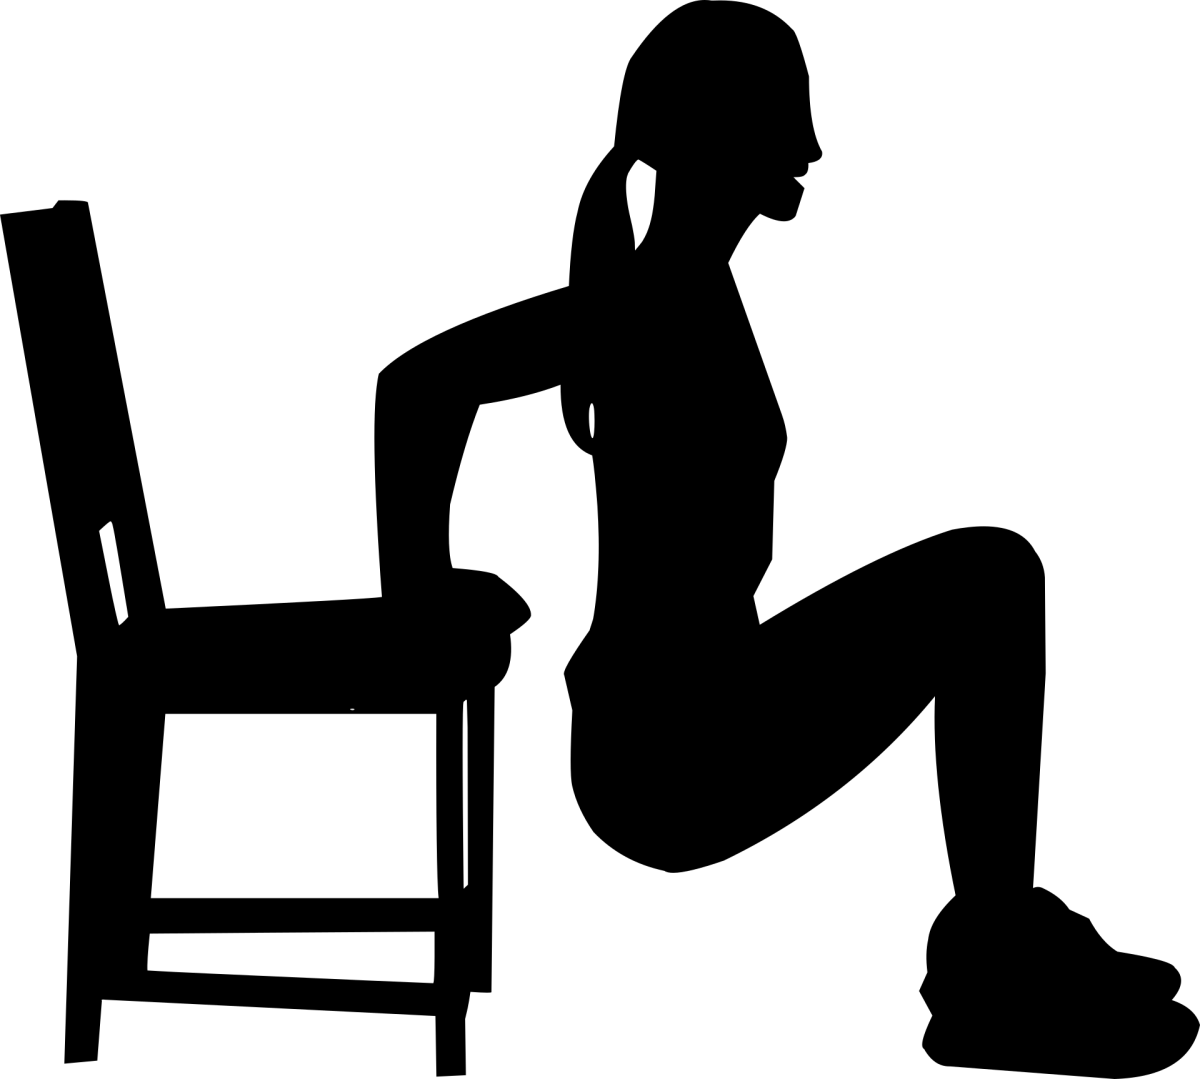 Chair Yoga Silhouette